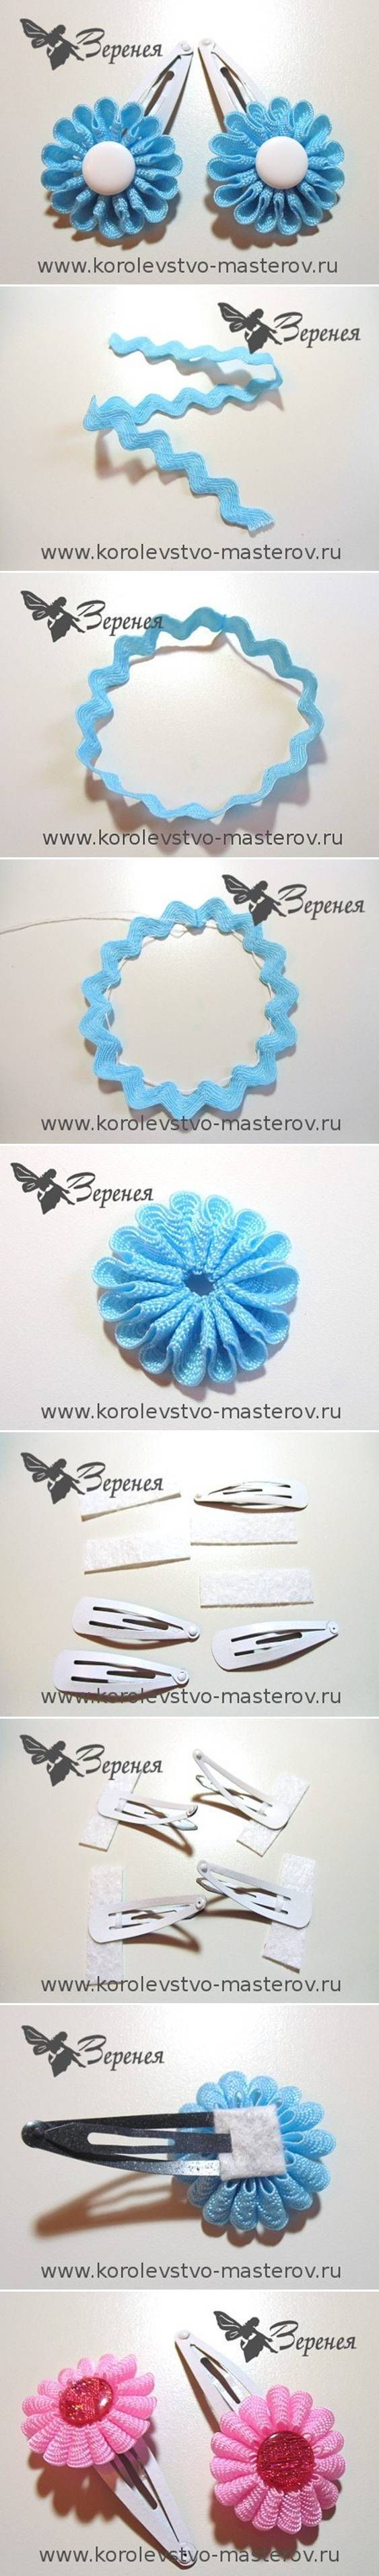 DIY Braid Flower DIY Projects